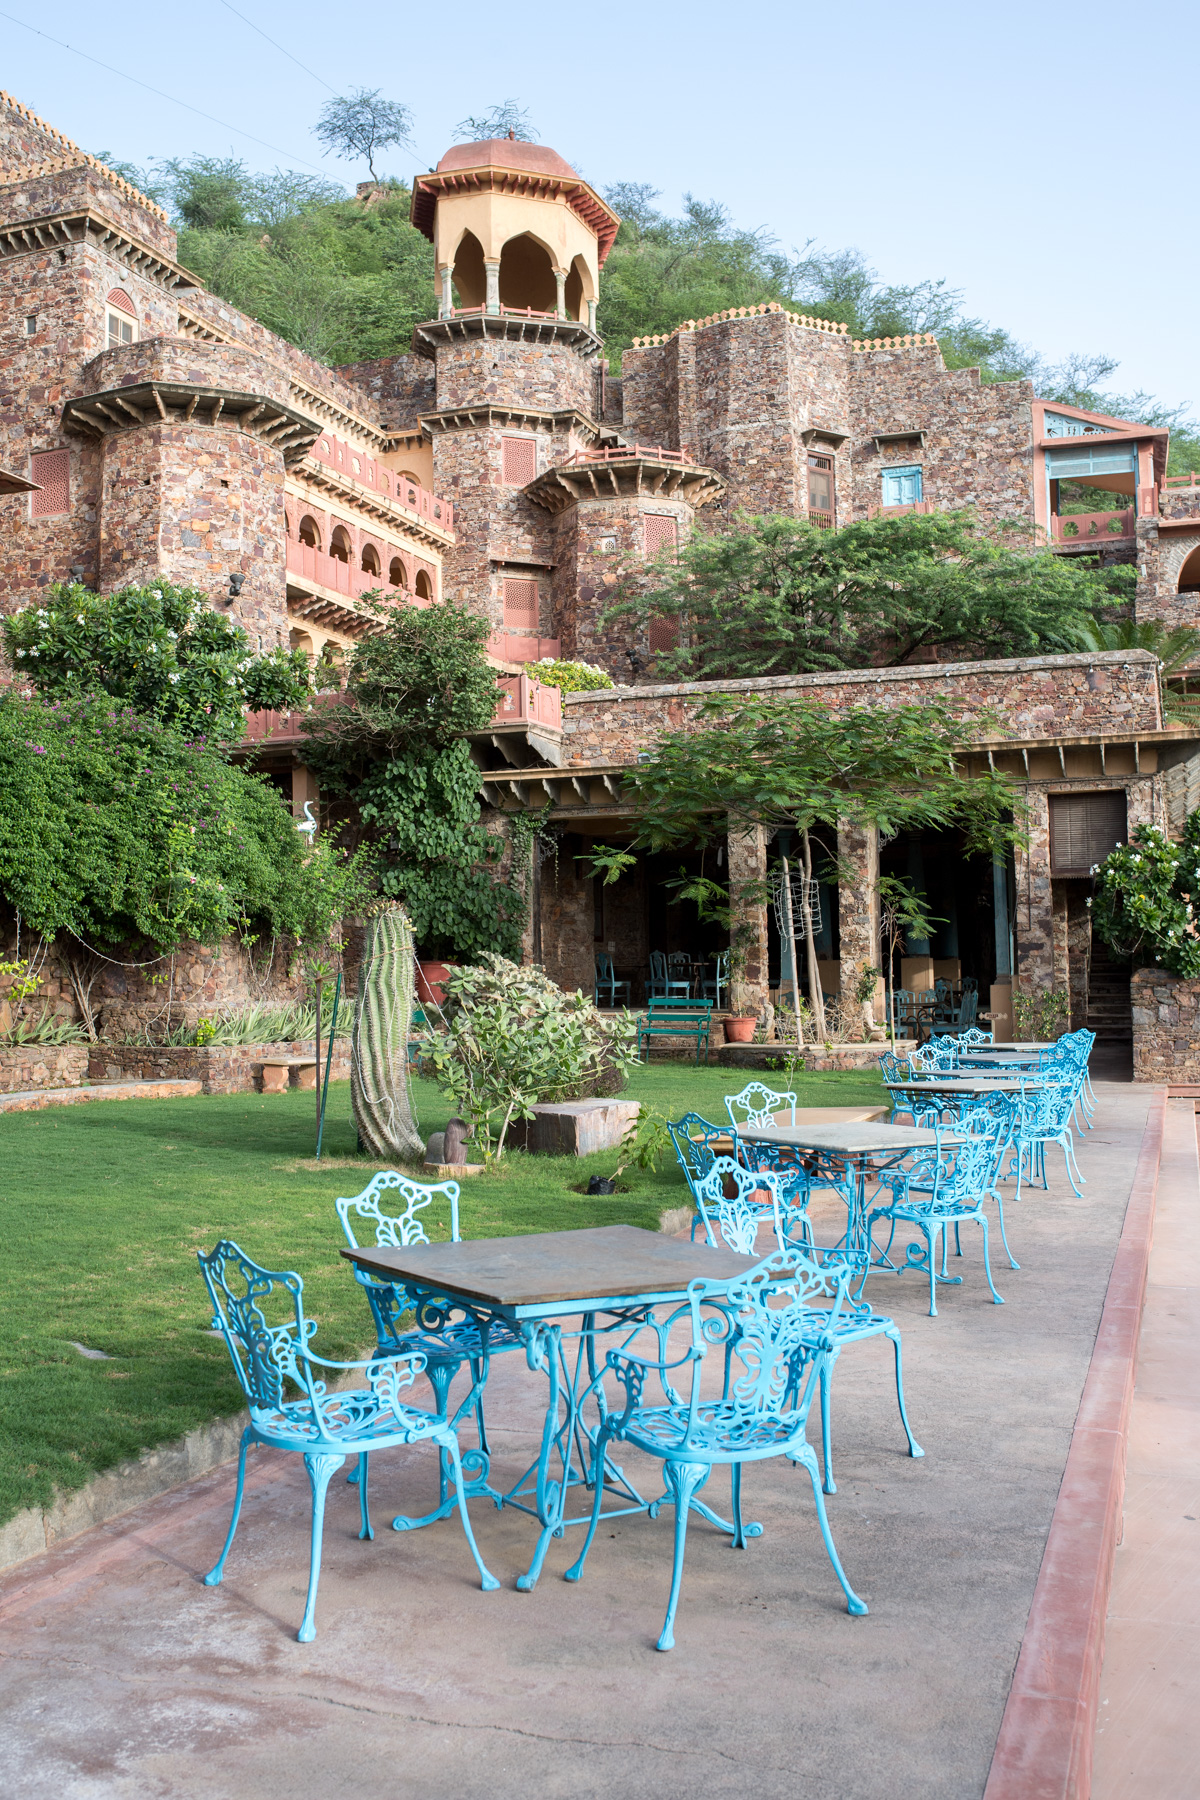 Stacie Flinner Neemrana Fort Palace India -6.jpg